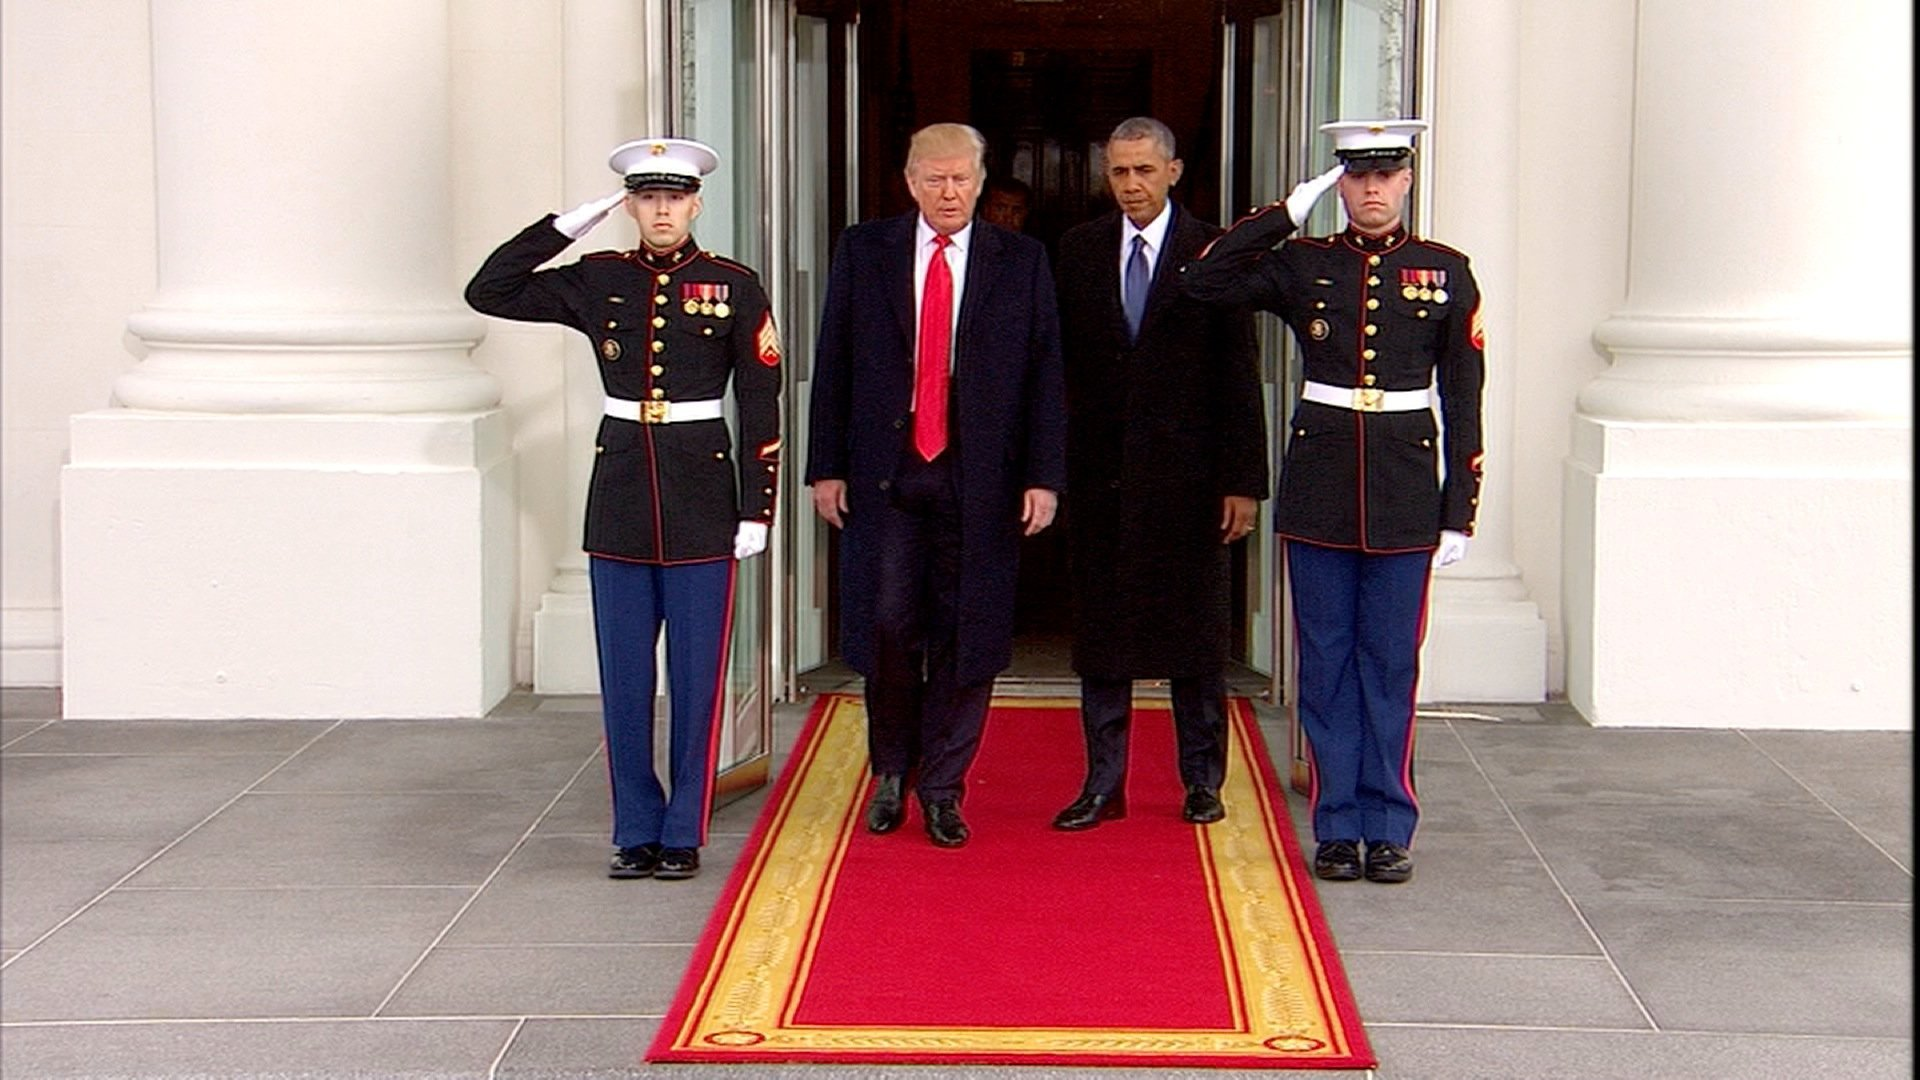 Obama and Trump arriving on Capital Hill